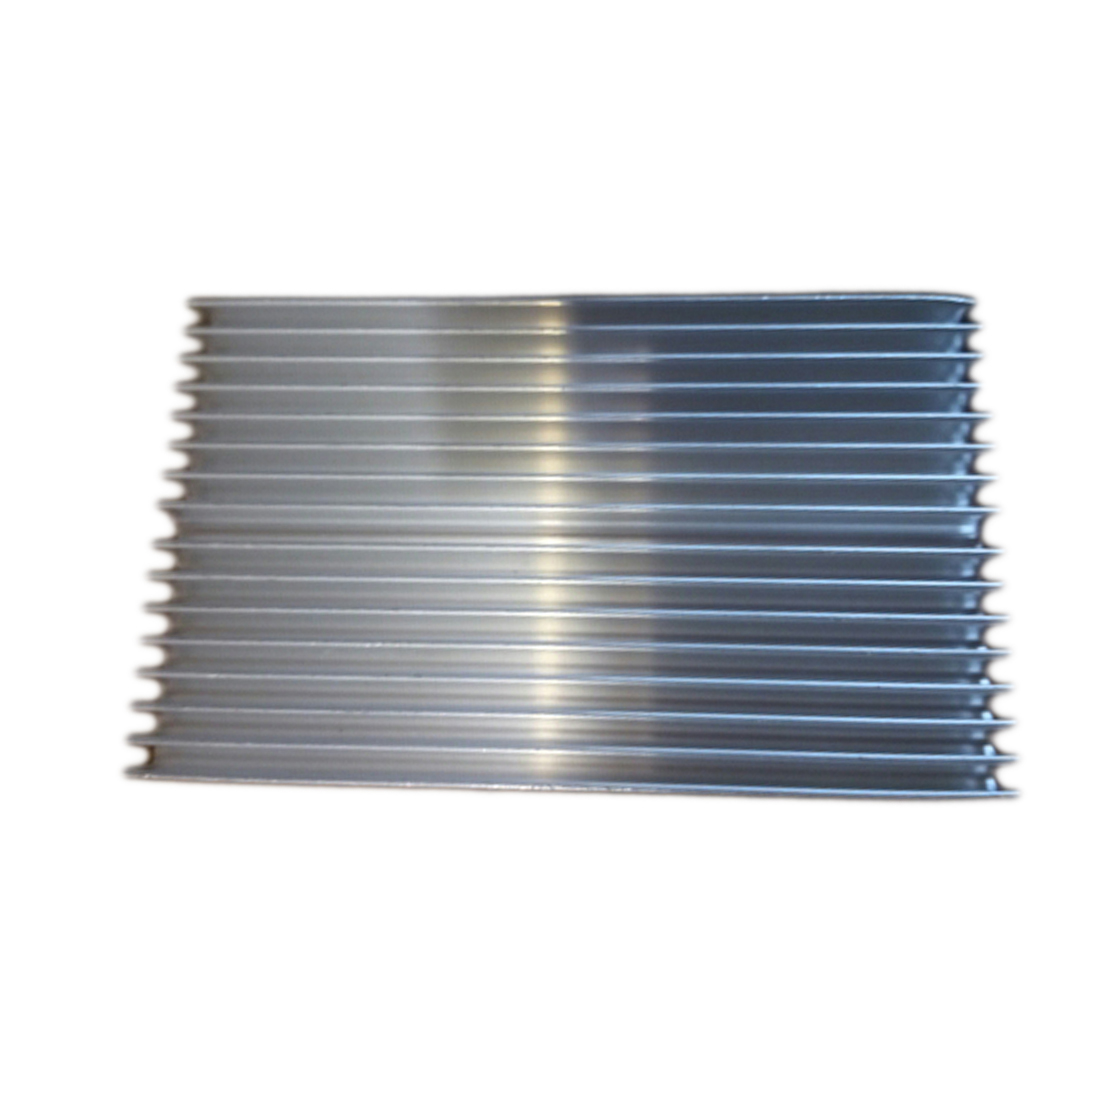 Etmakit High Quality 100*60*10mm DIY Cooler Aluminum Heatsink Grille Shape Radiator Heat Sink Chip for IC LED Power Transistor 50pcs 8 8x8 8x5mm aluminum heatsink radiator cooling cooler for electronic chip ic ram led with thermal conductive tape